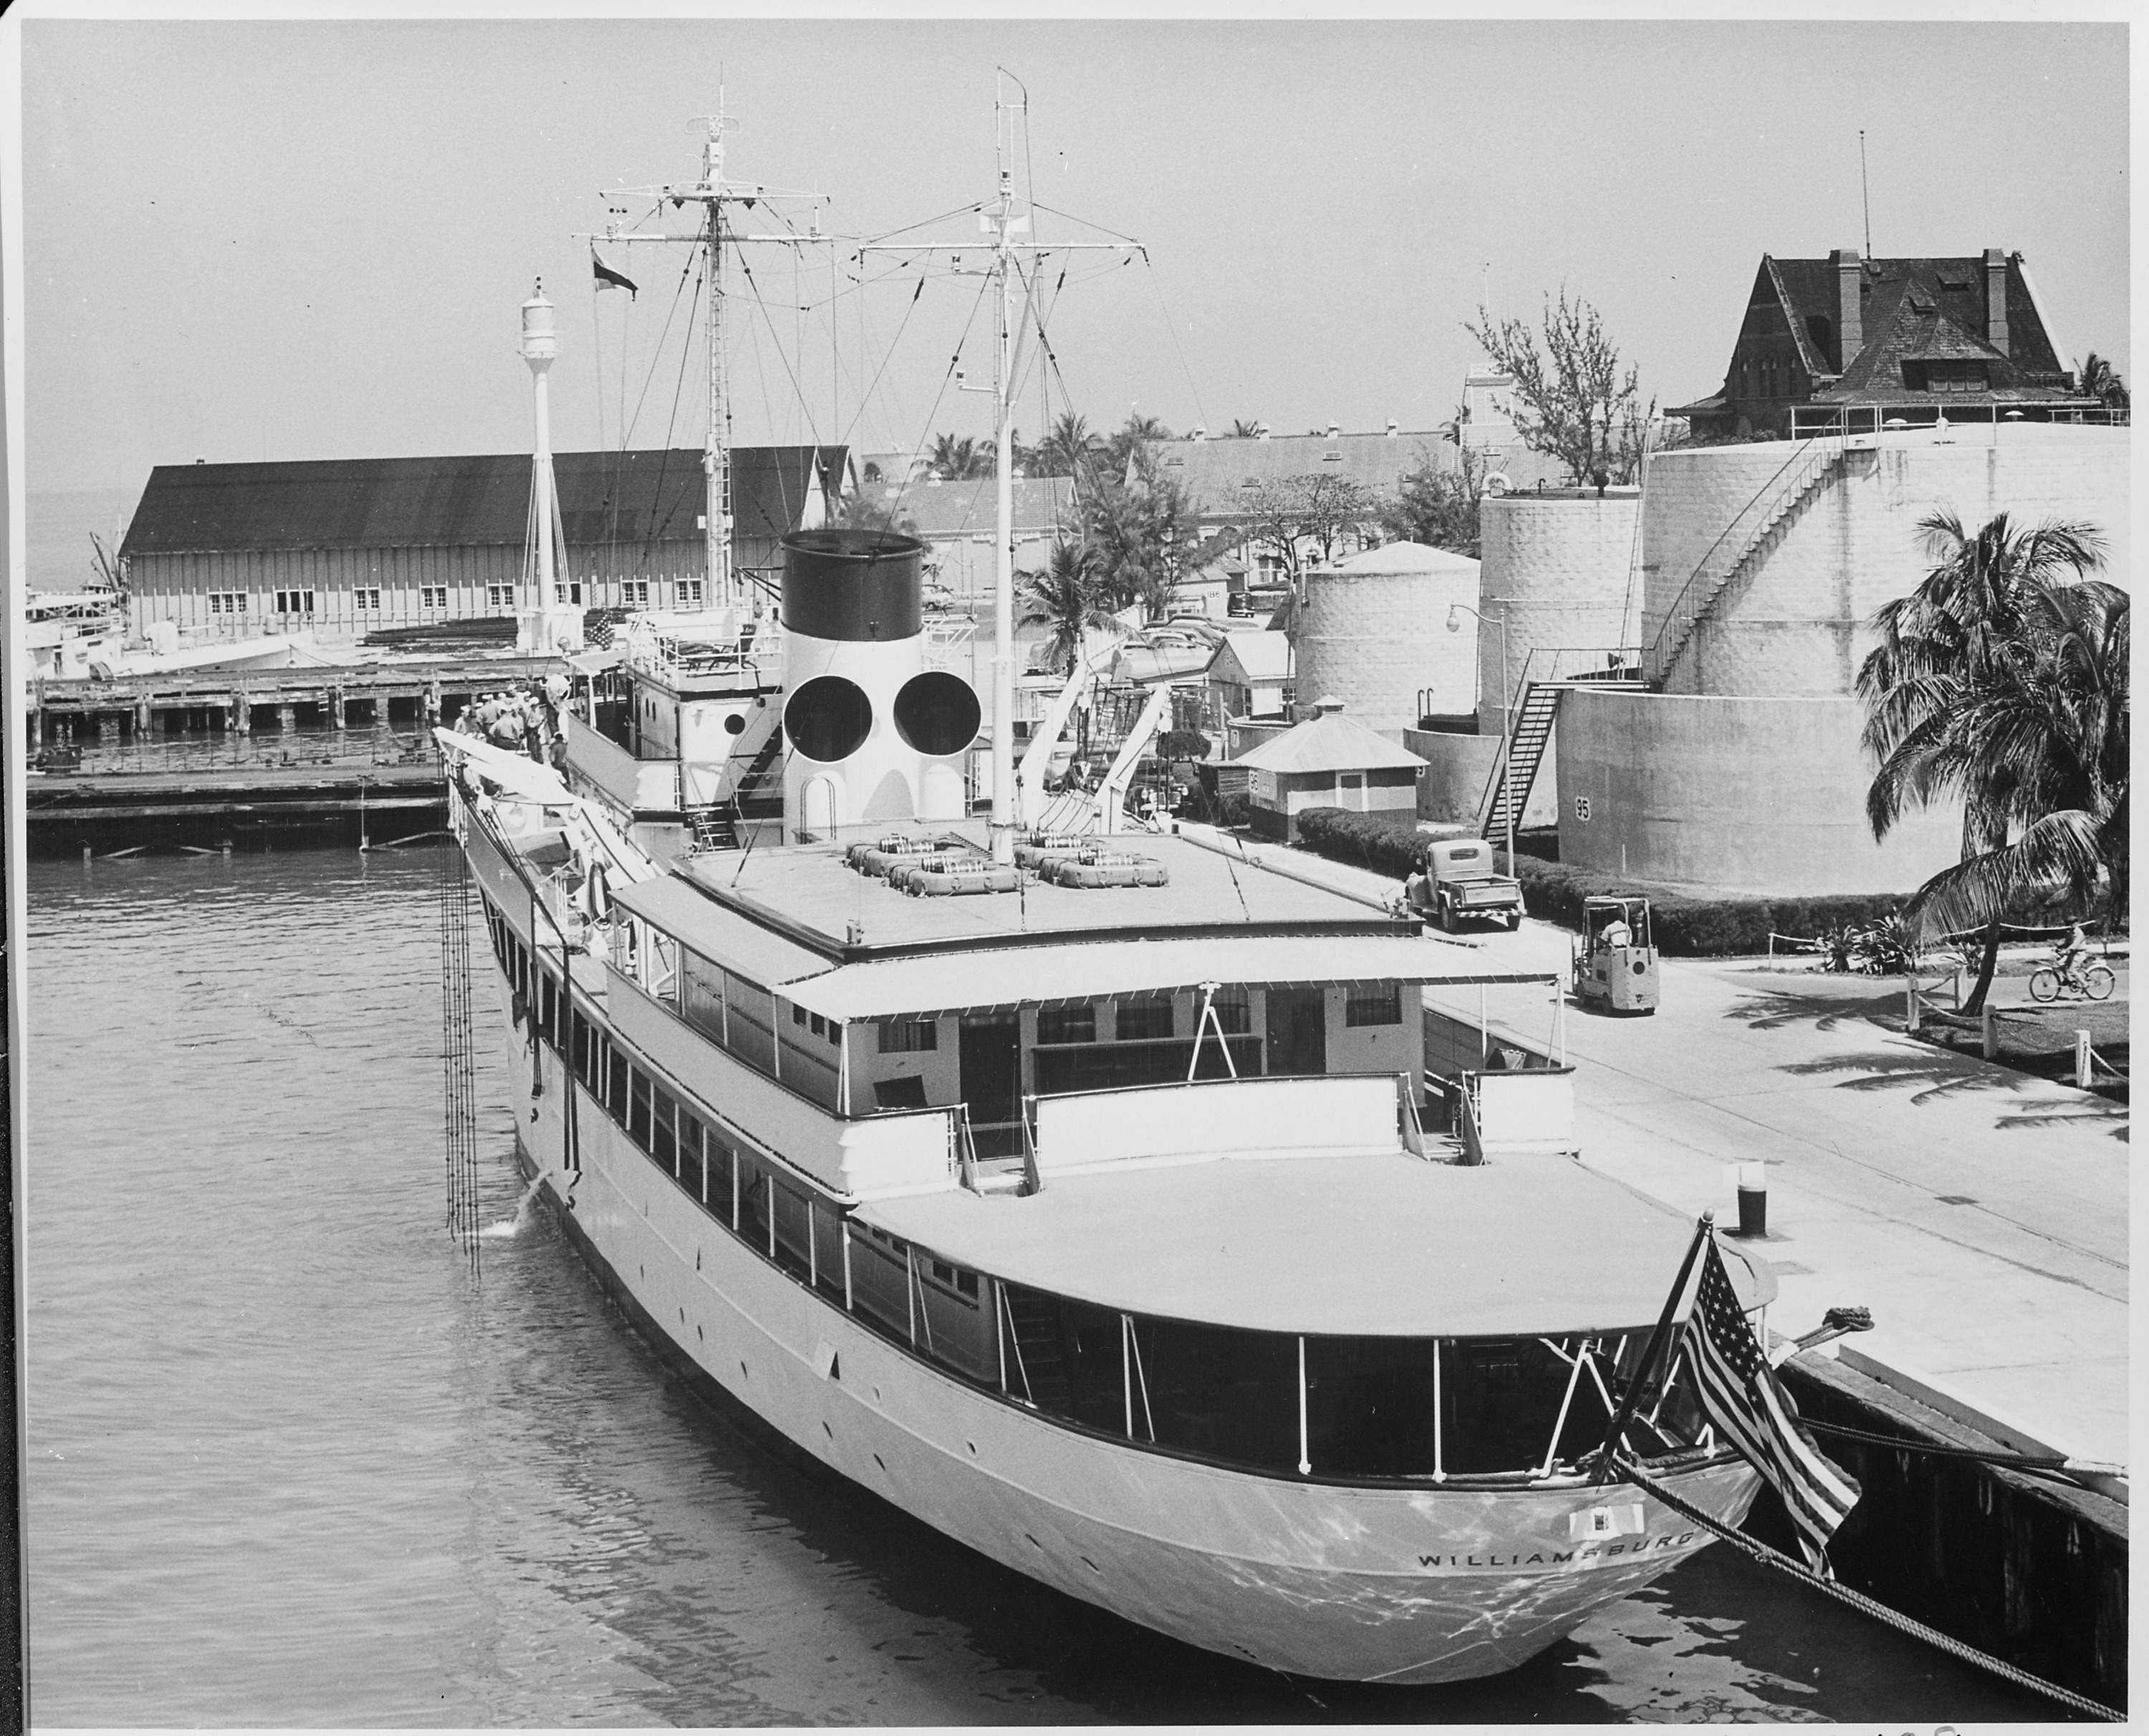 Presidential Yacht The U S S Sequoia Save Our History Movie free download HD 720p